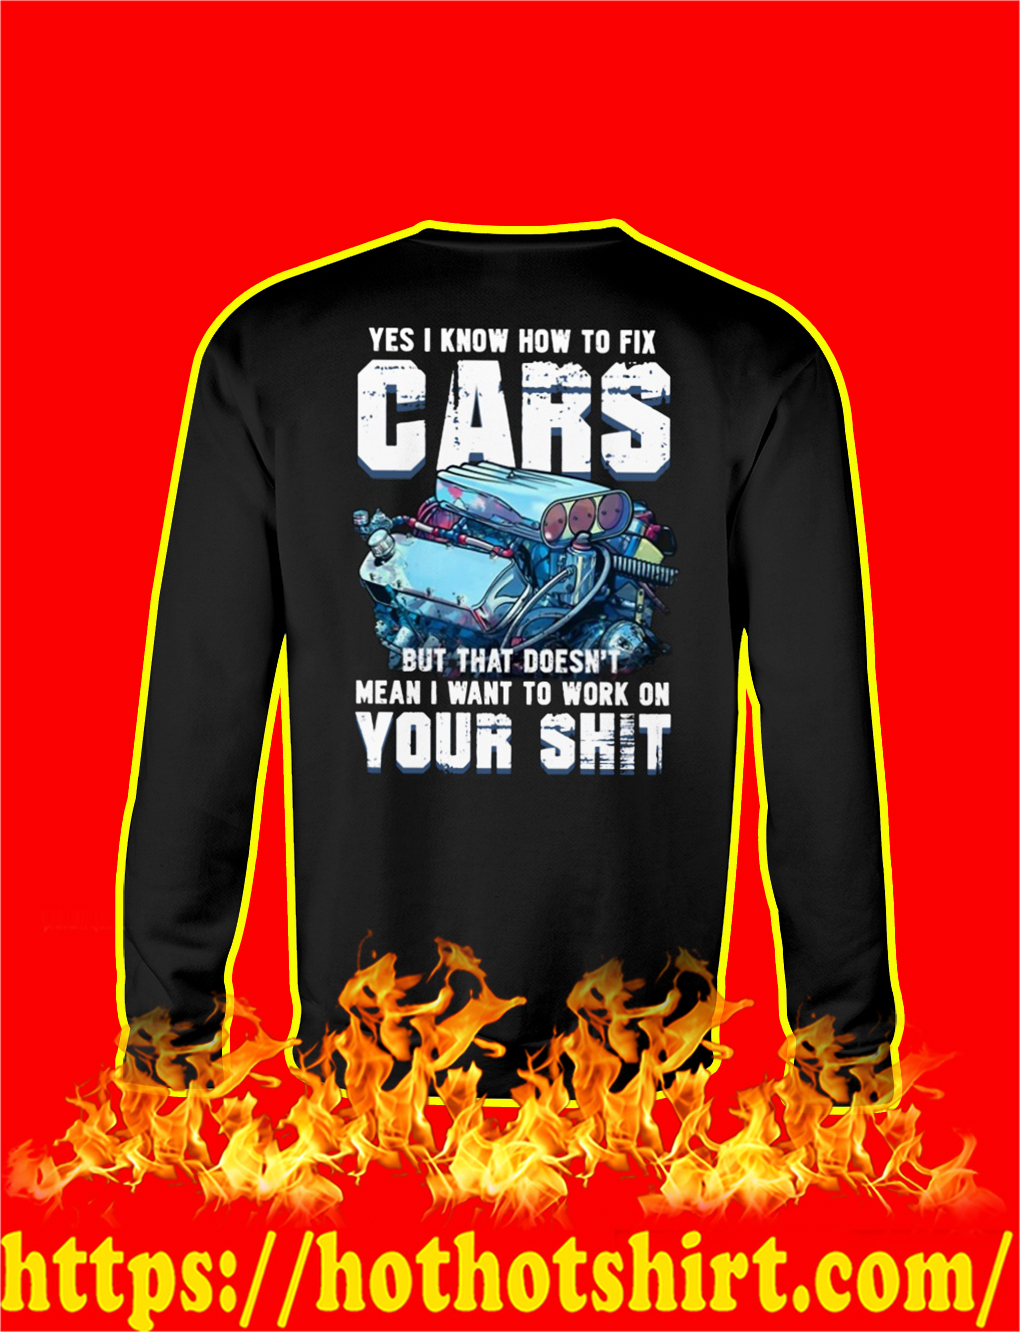 Yes I Know How To Fix Cars But That Doesn't Mean I Want To Work On Your Shit Sweatshirt